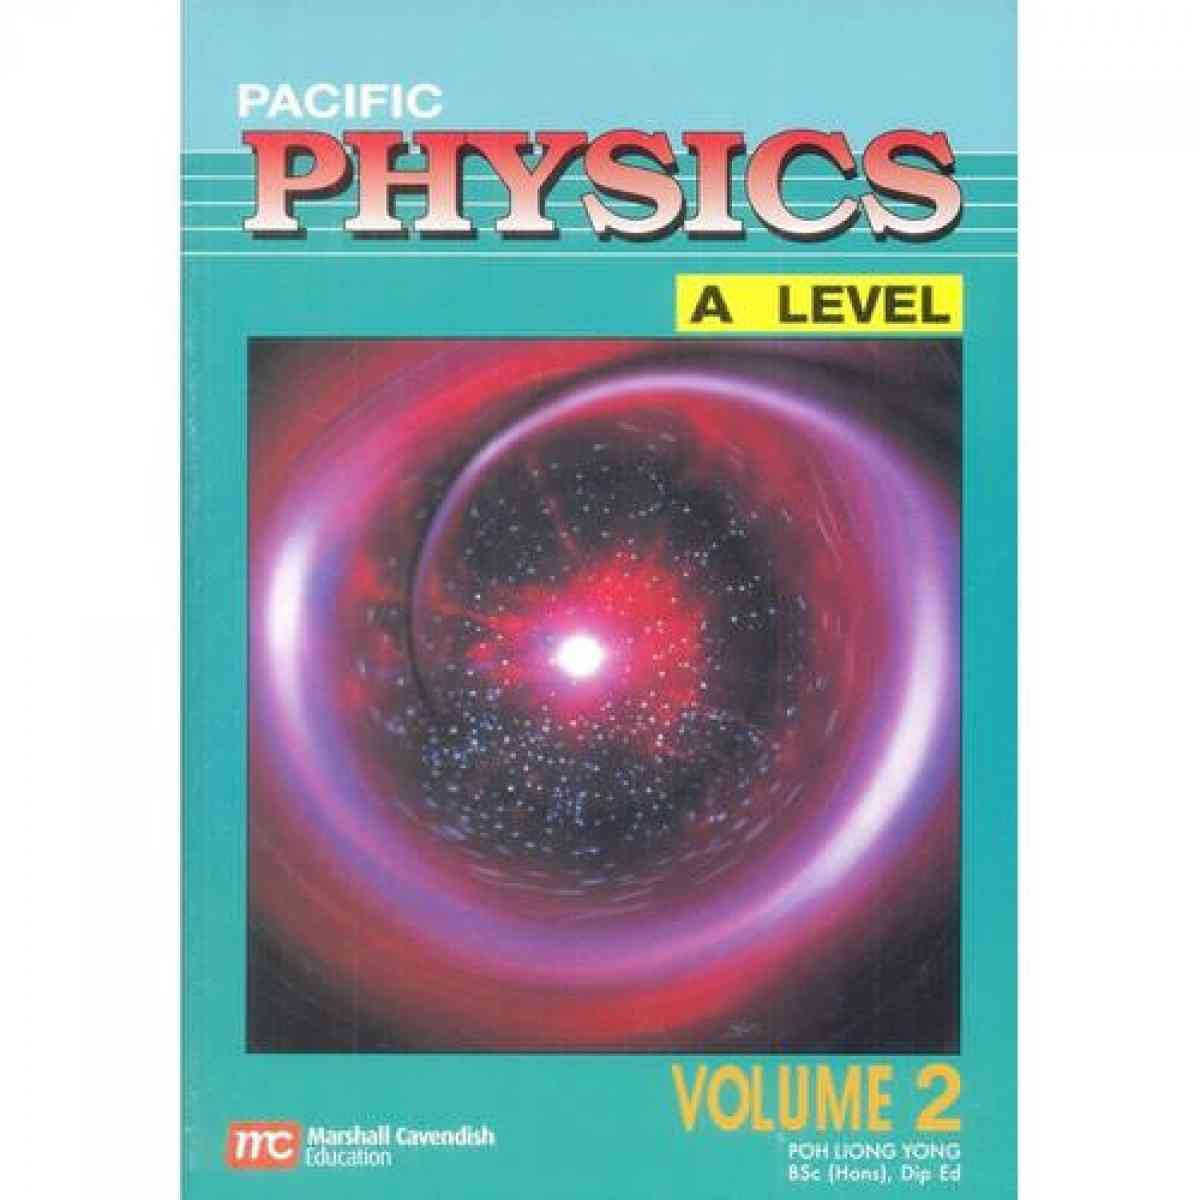 MARSHALL CAVENDISH INTL Pacific Physics A Level Vol 2 2004